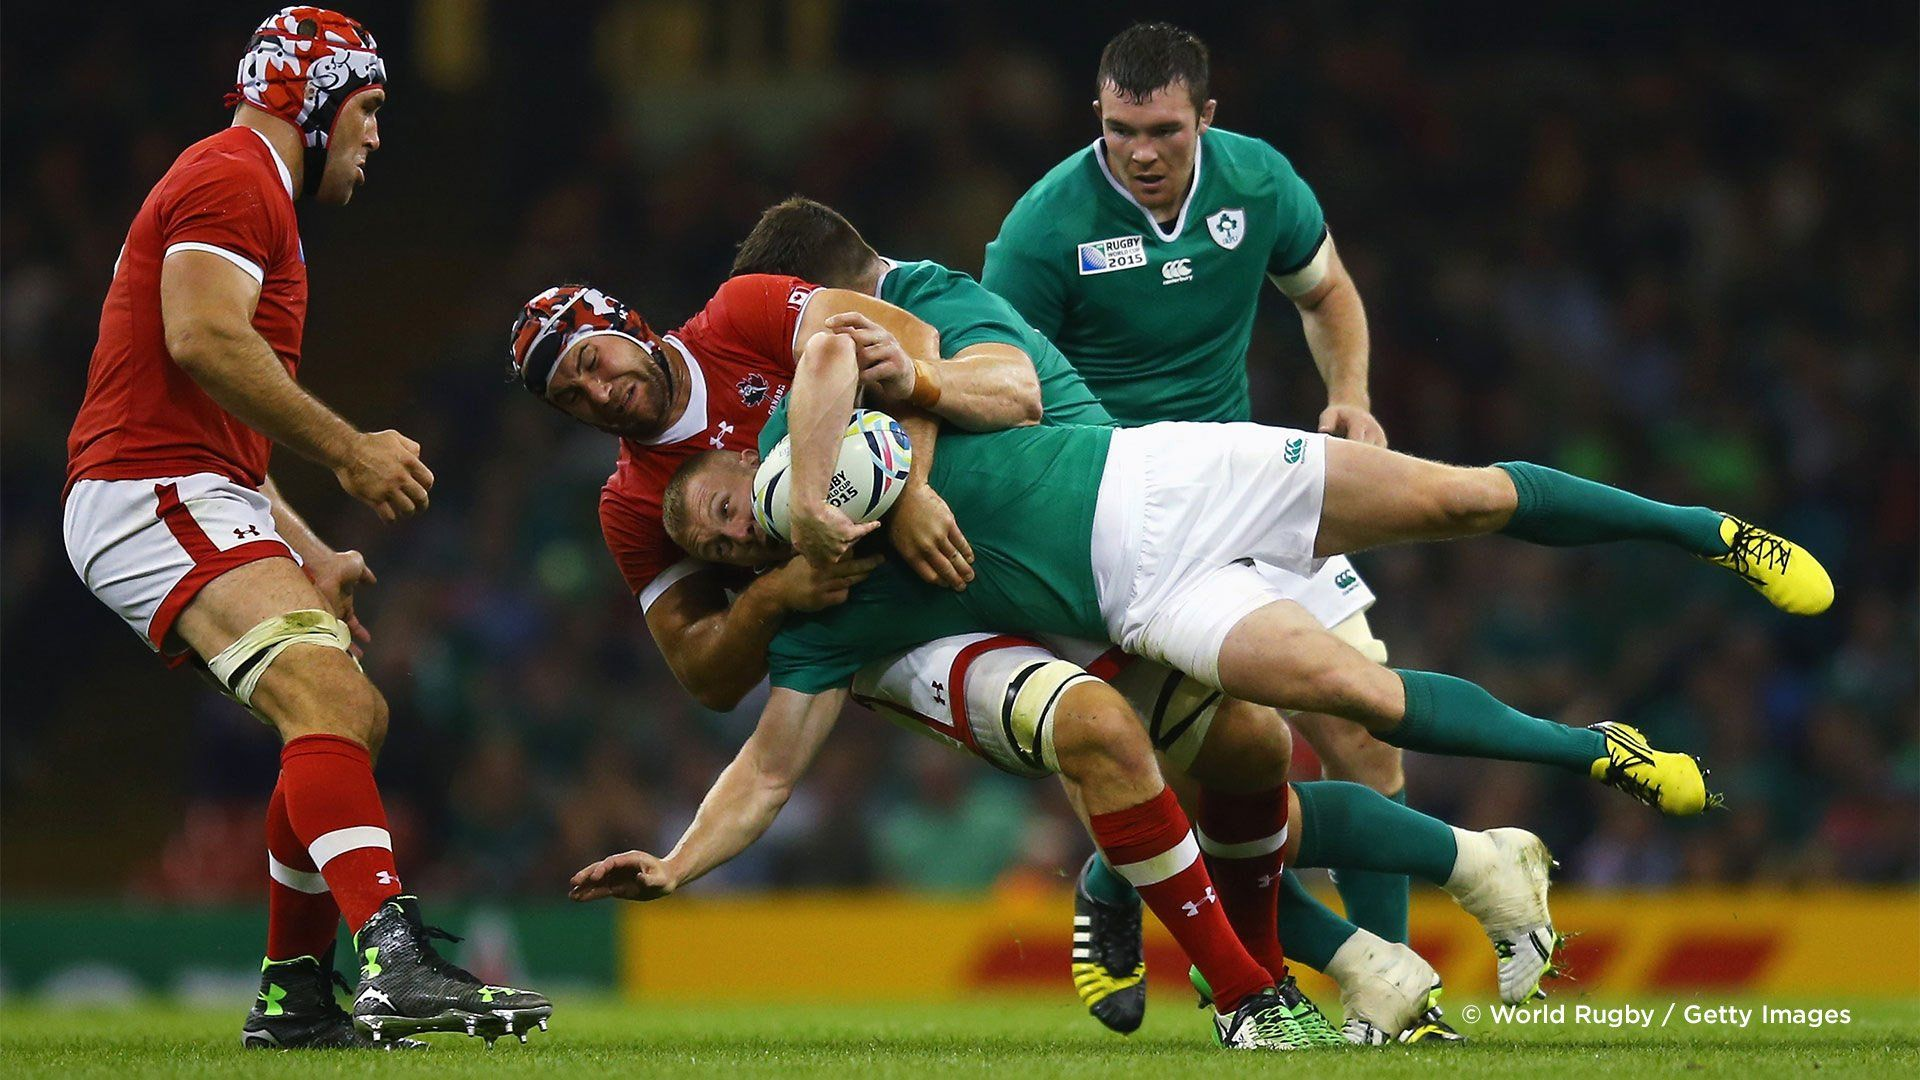 A Canadian player tackles an Irish player in a 2015 Rugby World Cup match. Photo by Richard Heathcote.